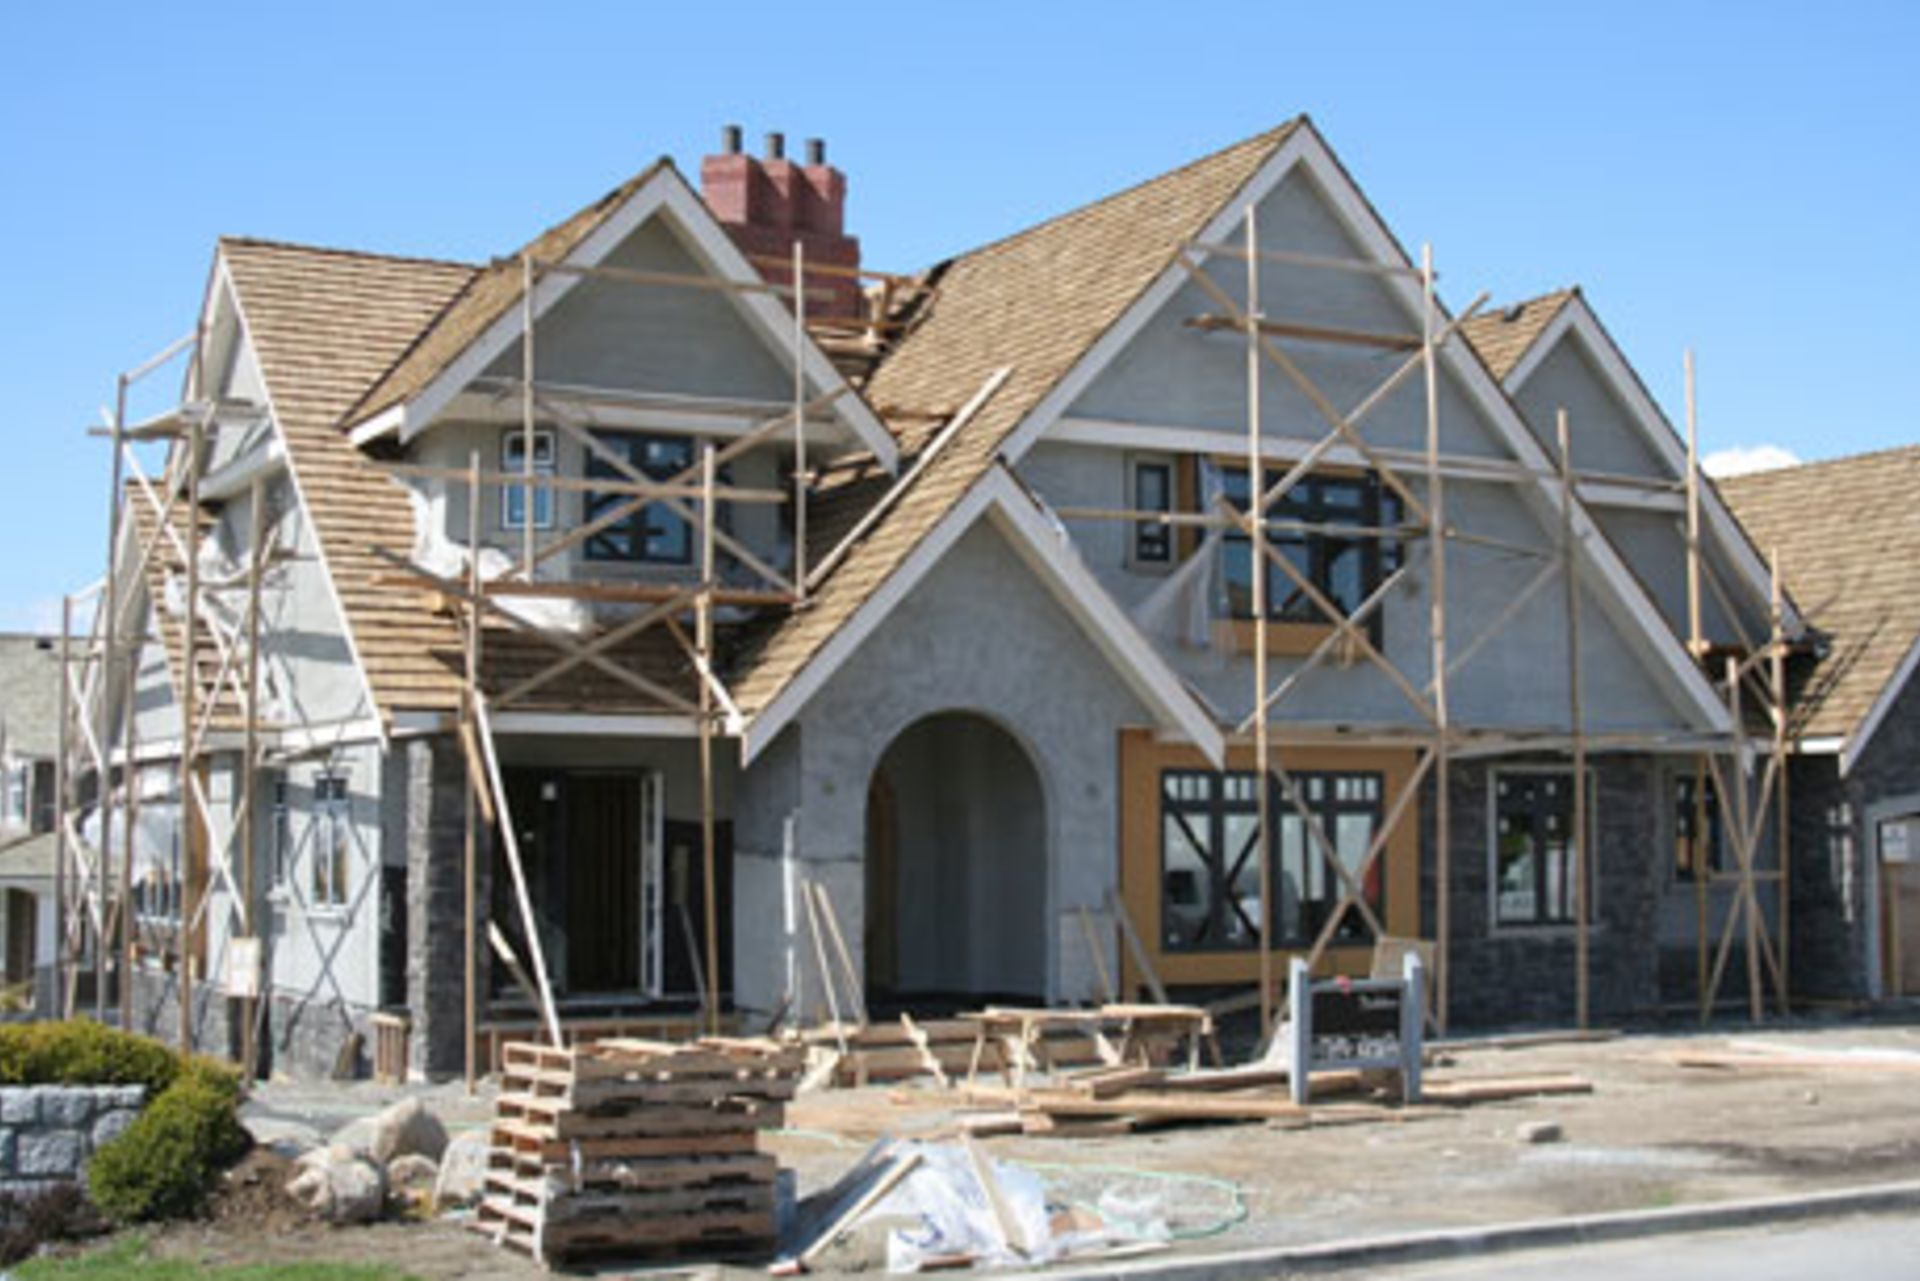 New construction in a Low Inventory Market